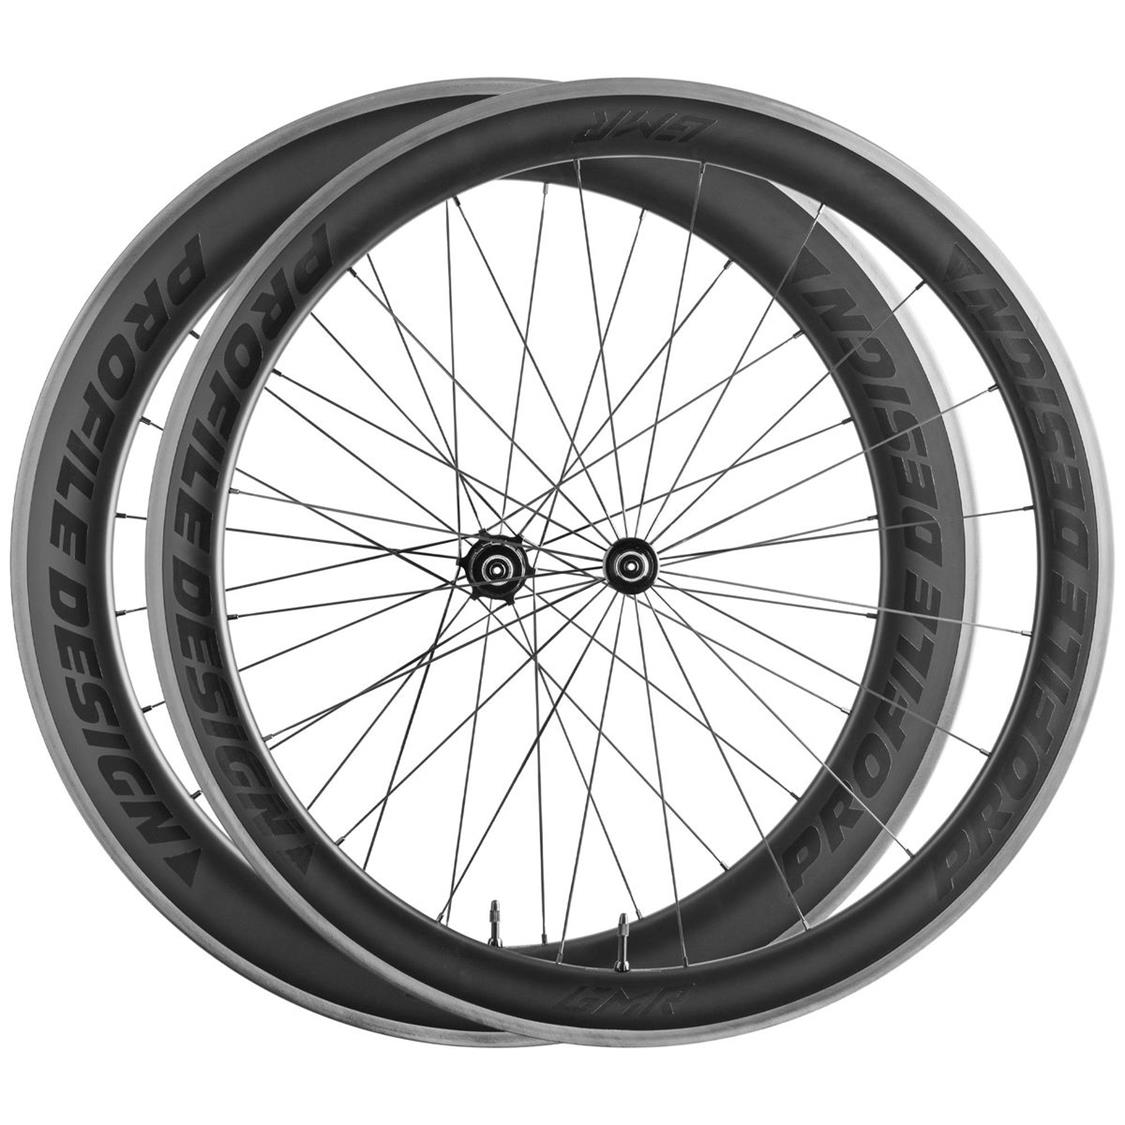 Profile Design Gmr Carbon Wheels Papanui Cycles Great Service Great Rewards Great Choice,Female Fashion Designer Business Card